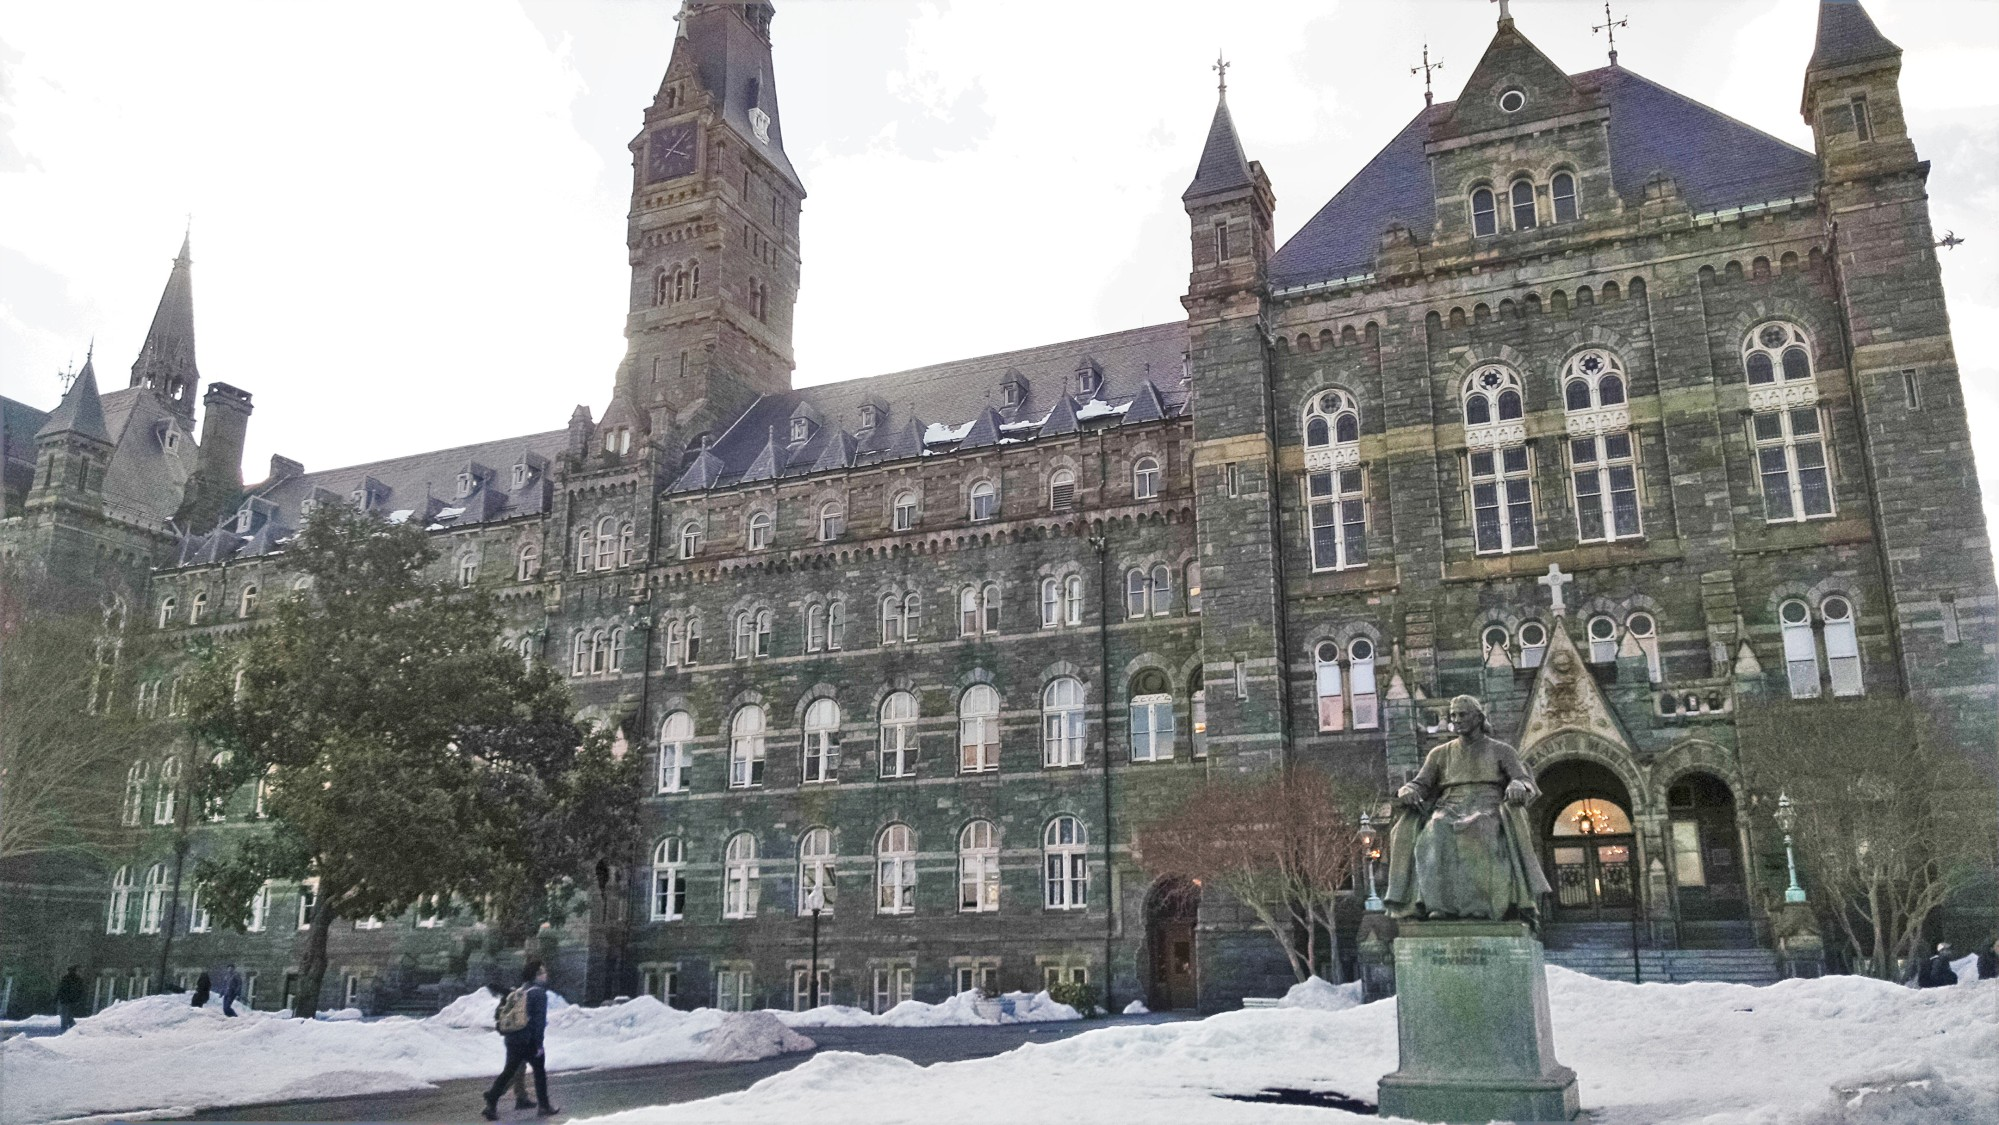 A picture of Healy Hall at Georgetown University, a large, neo-Medieval structure made of dark bricks, with arched windows and a clock tower. In front of the building is a statue of Bishop John Carroll, founder of the university.